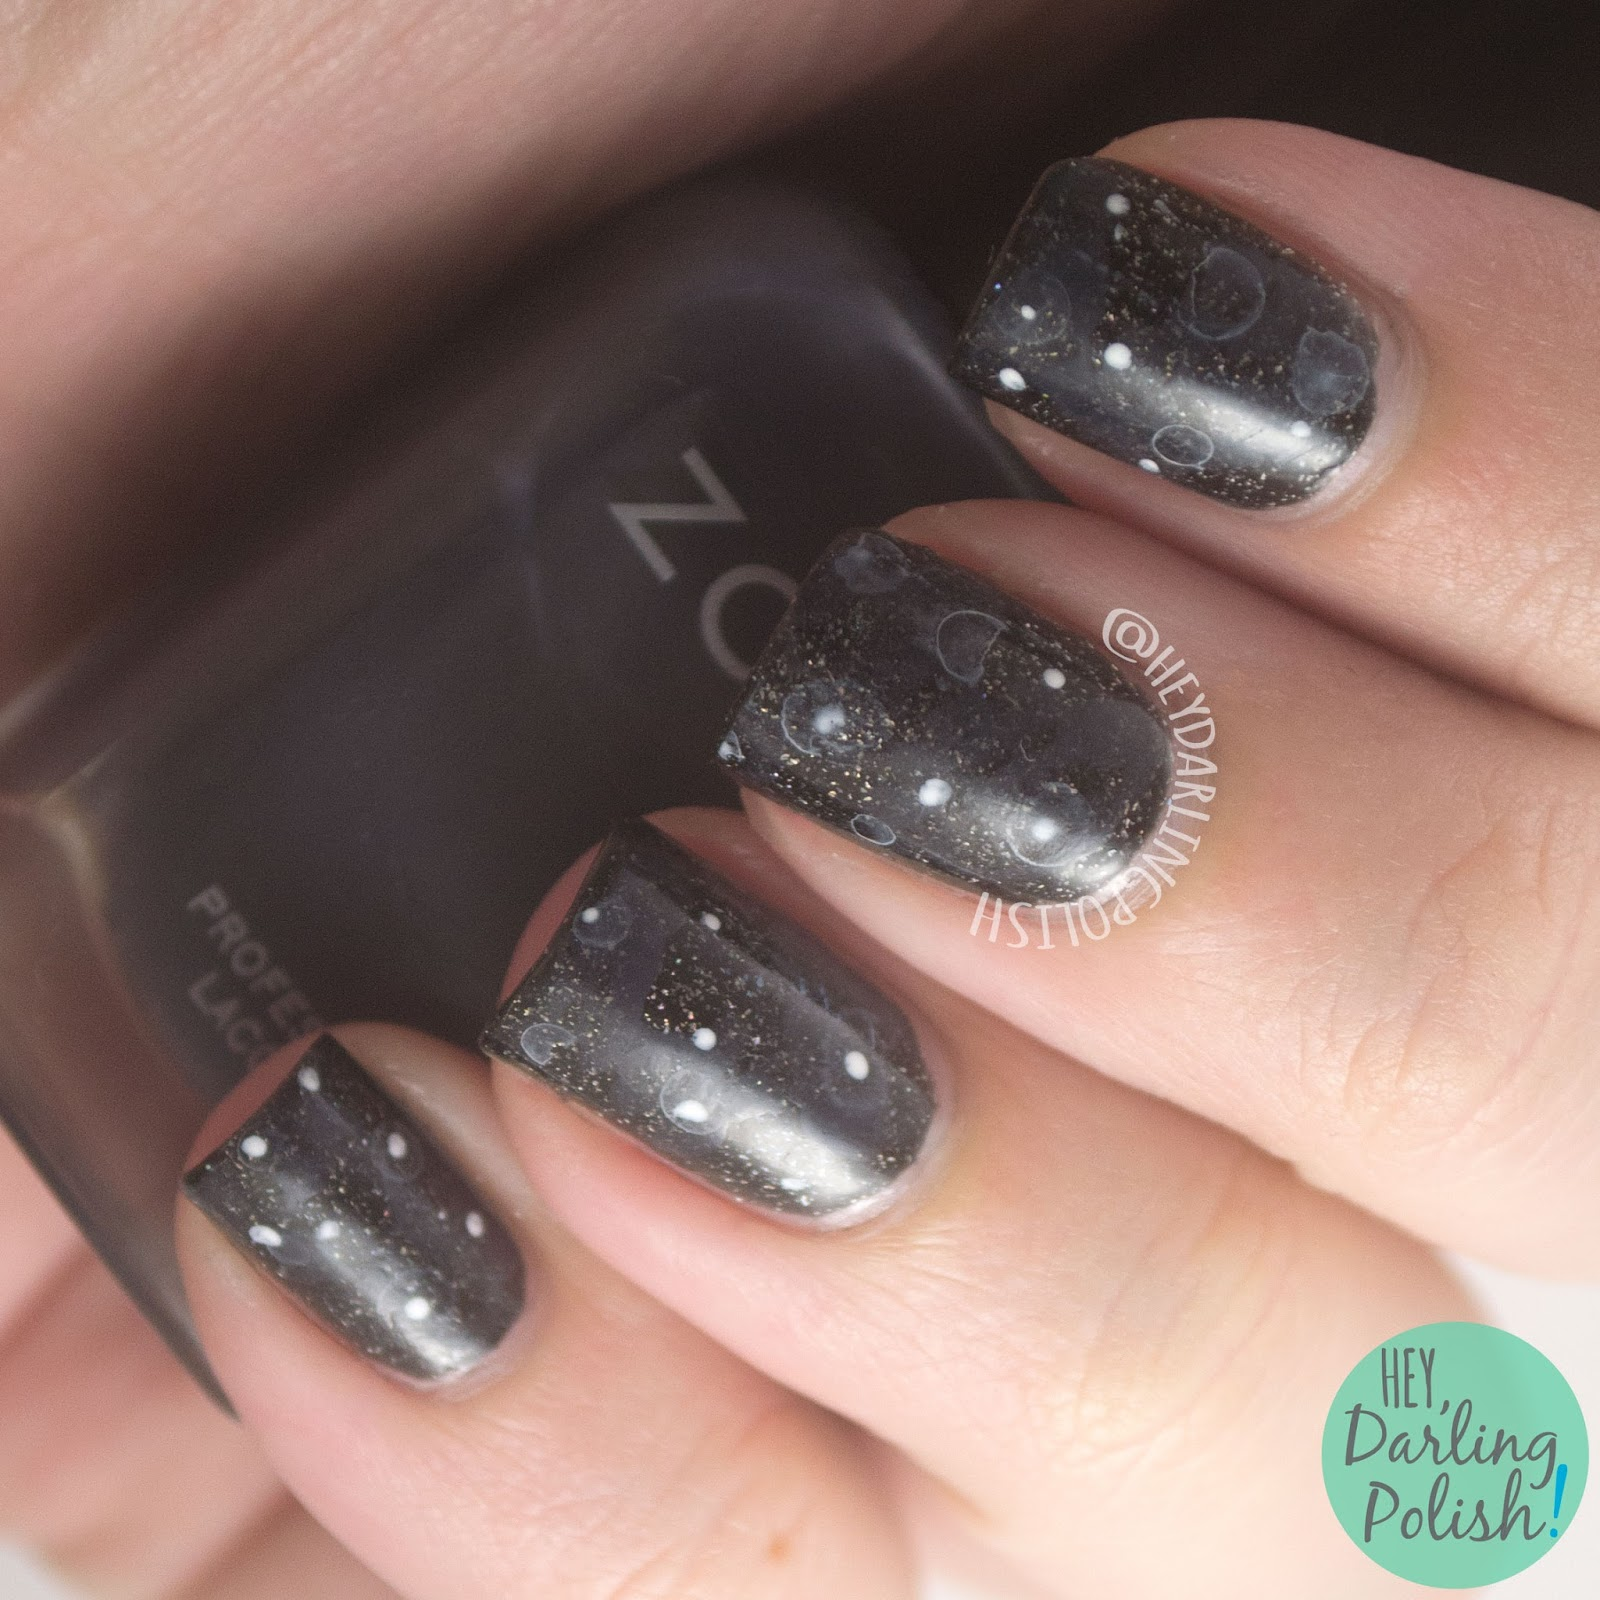 nails, nail art, nail polish, black, stars, hey darling polish, after dark, lacquer legion